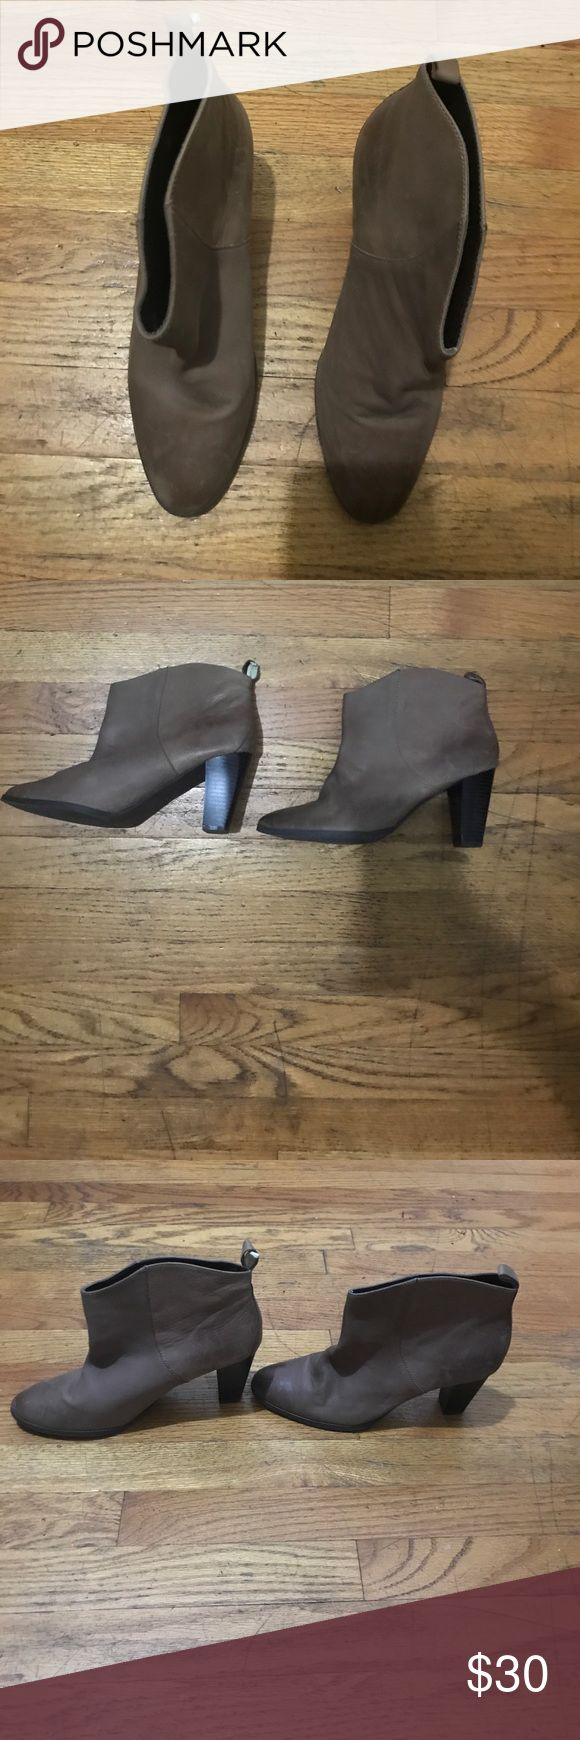 Gap heeled chelsea boots in taupe Worn once, great condition, 100% leather Shoes Heeled Boots